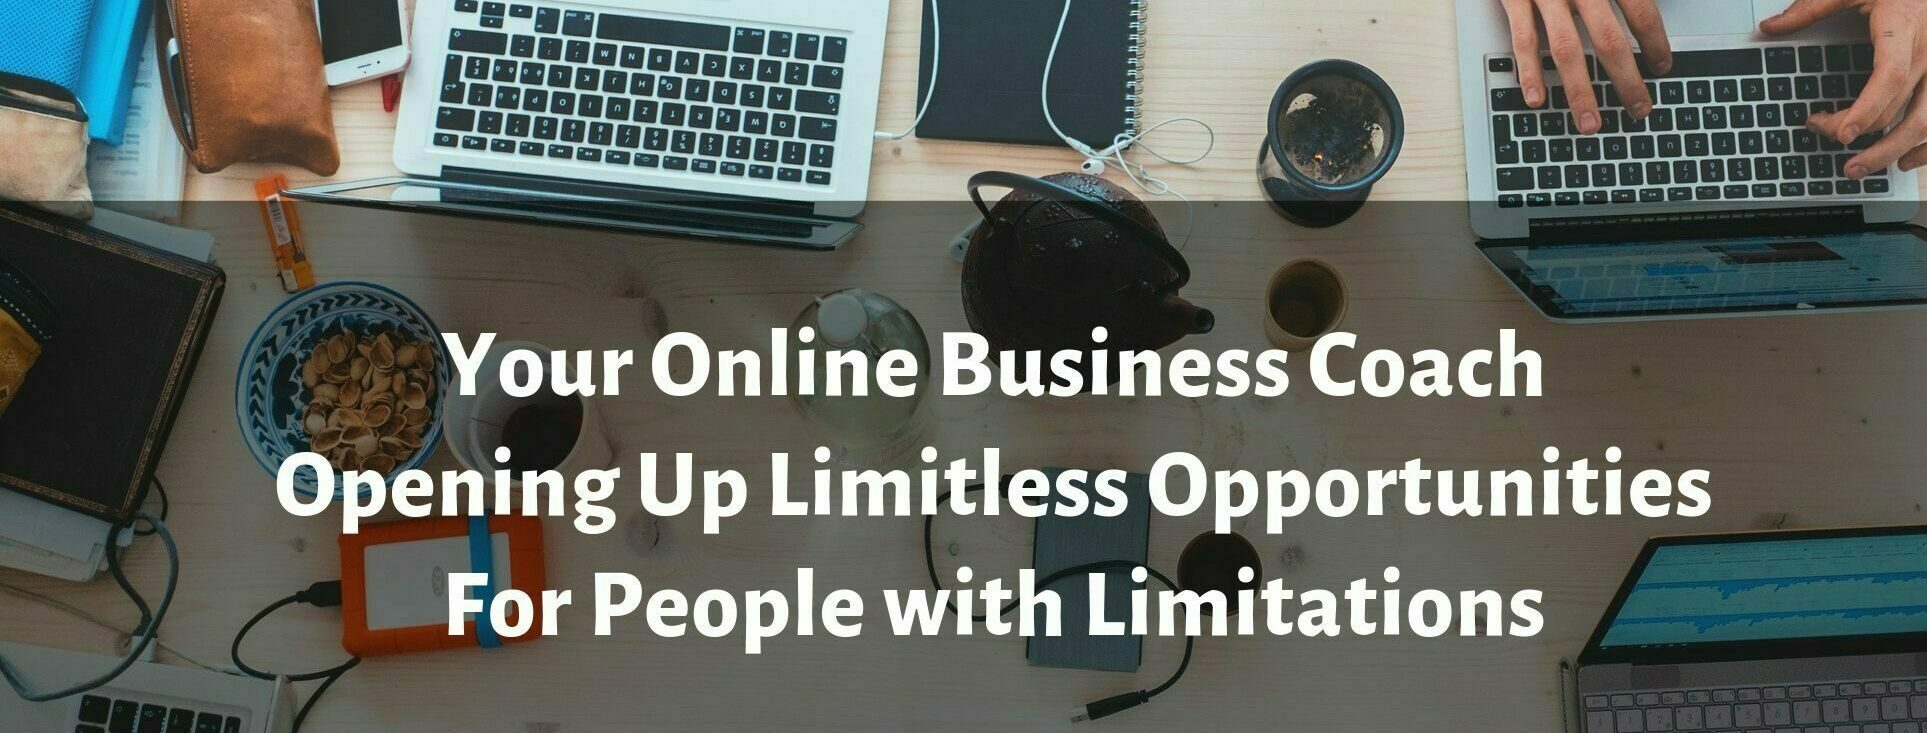 Your Online Business Coach Opening Up Limitless Opportunities For People with Limitations